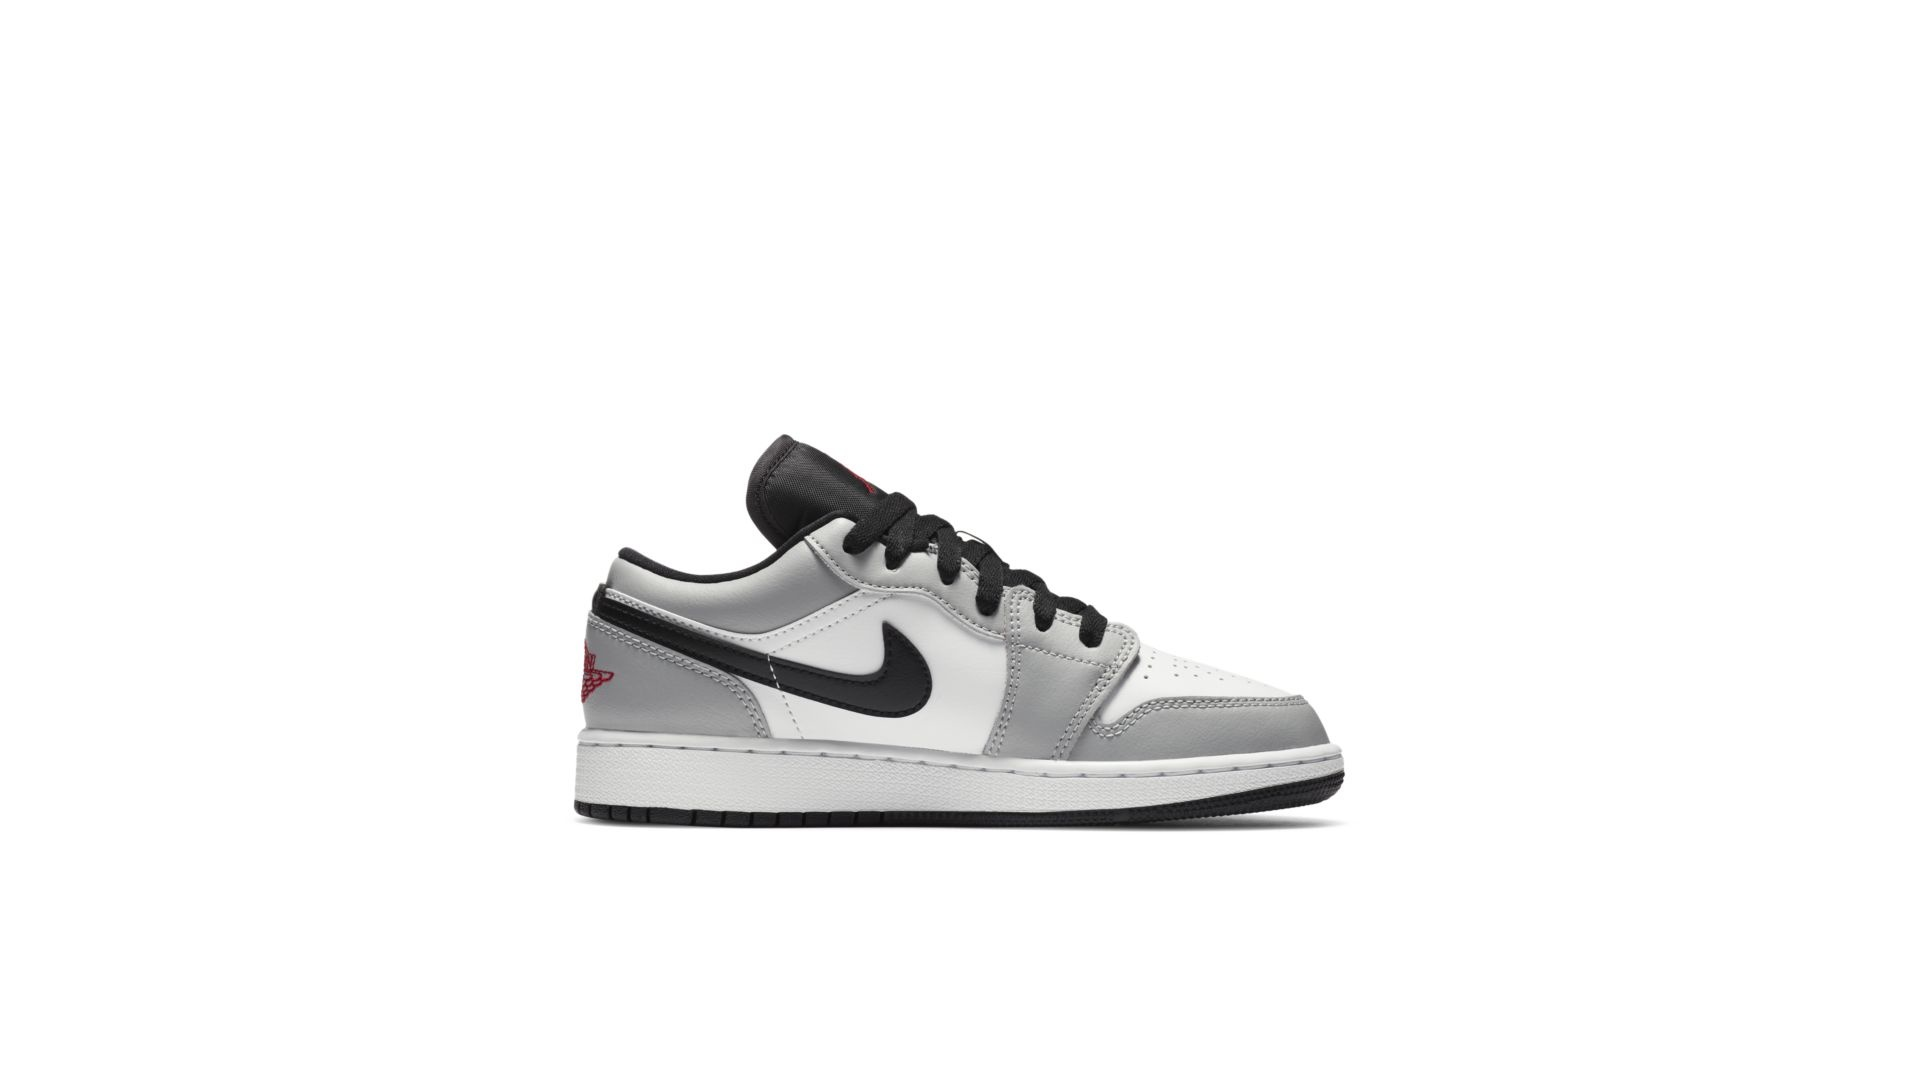 Air Jordan 1 Low Light Smoke Grey Gs Sneakin